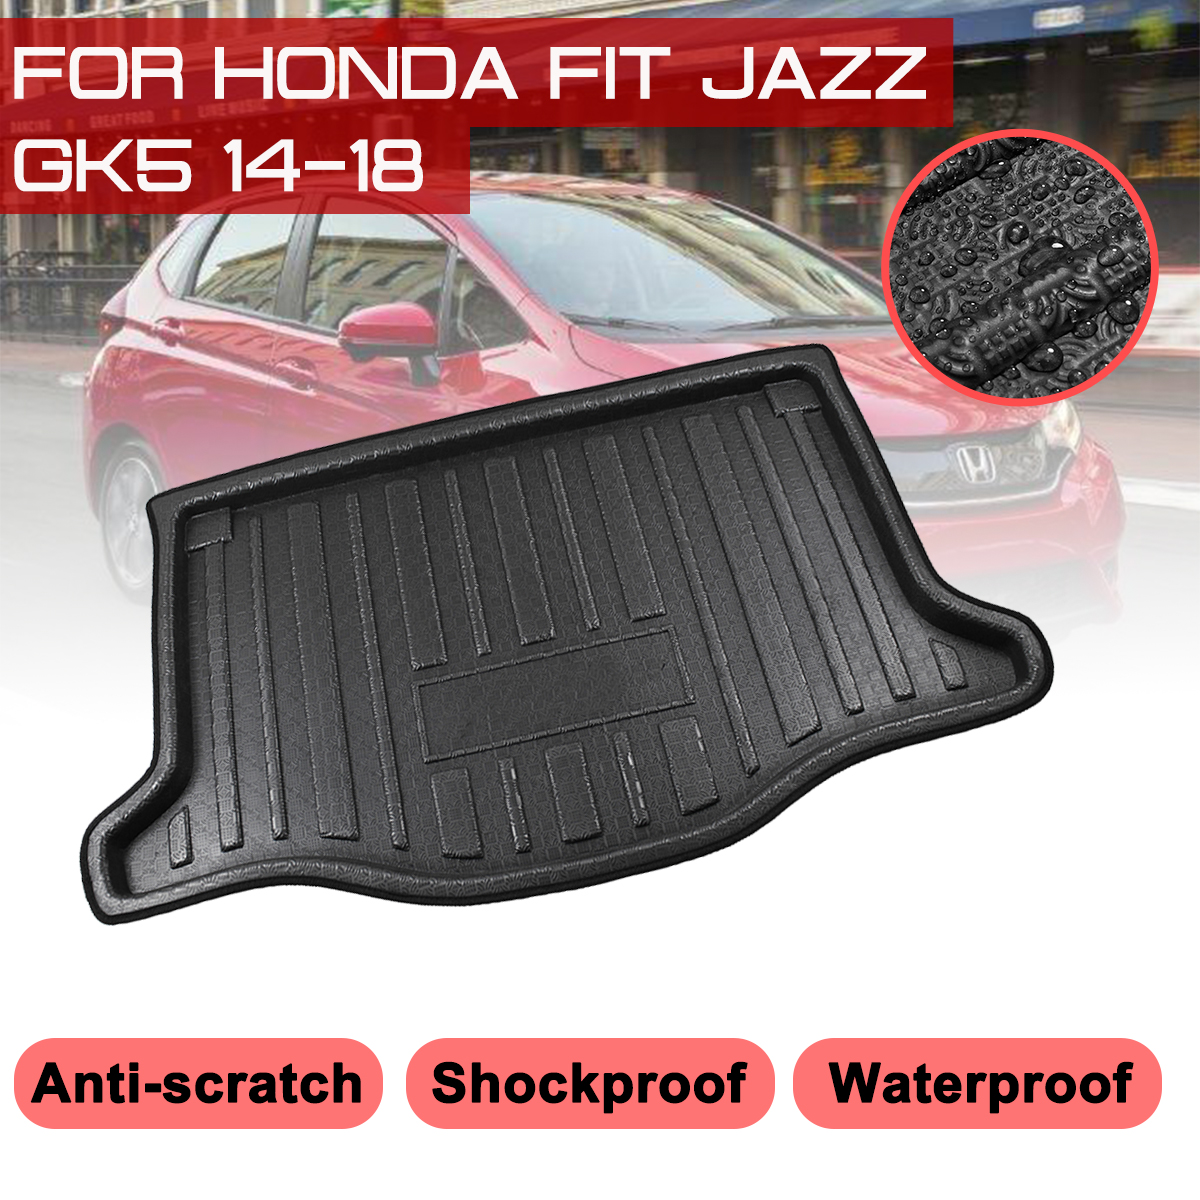 Car Floor Mat Carpet For <font><b>Honda</b></font> <font><b>FIT</b></font> JAZZ GK5 2014 <font><b>2015</b></font> <font><b>2016</b></font> 2017 2018 Rear Trunk Anti-mud Cover image